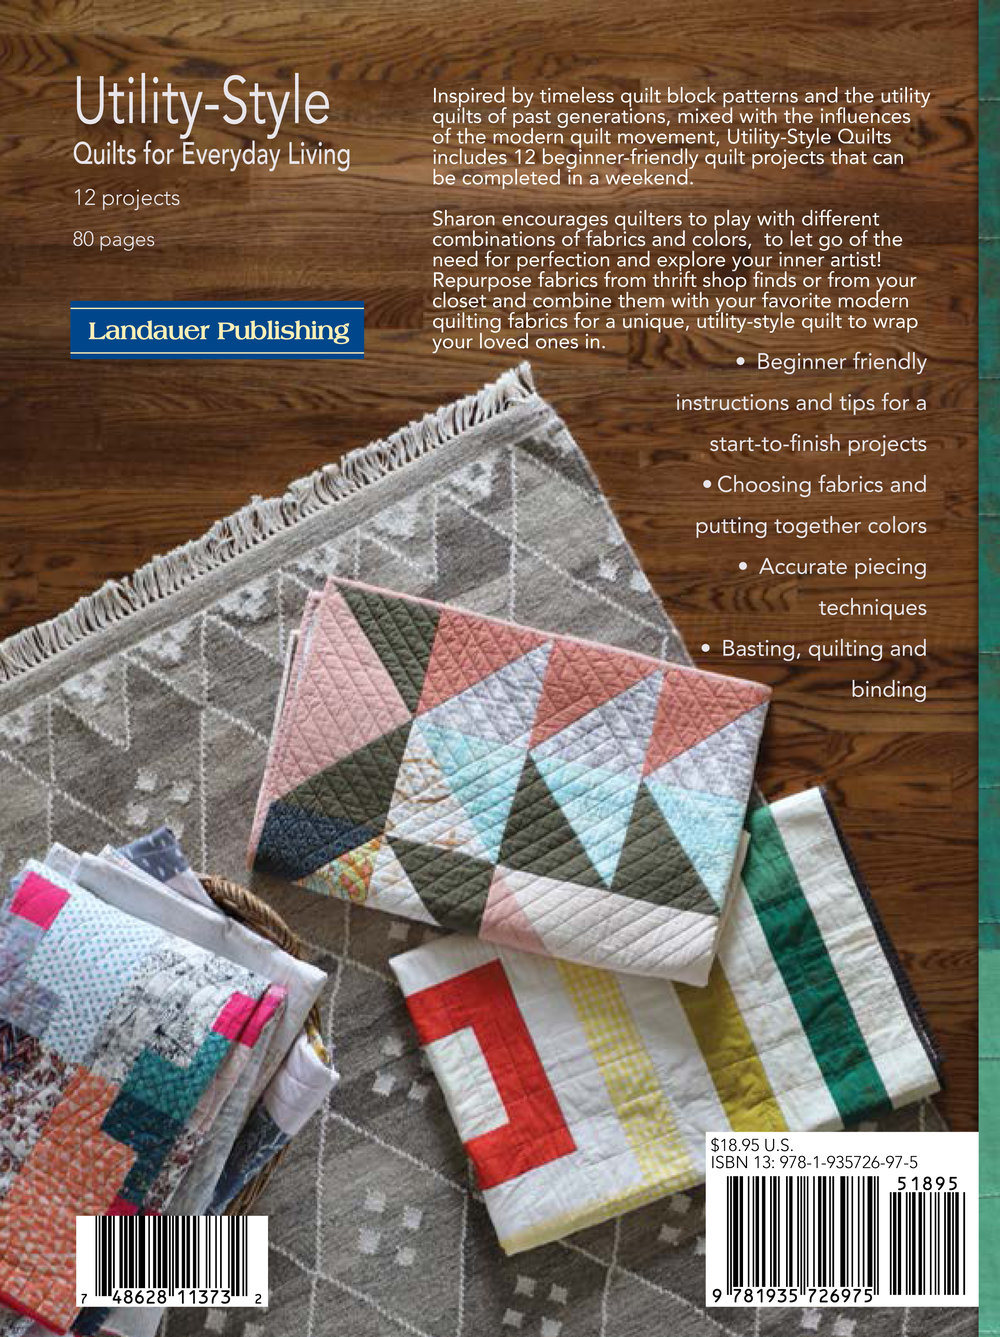 Utility-Style Quilts for Everyday Living Back Cover.jpg